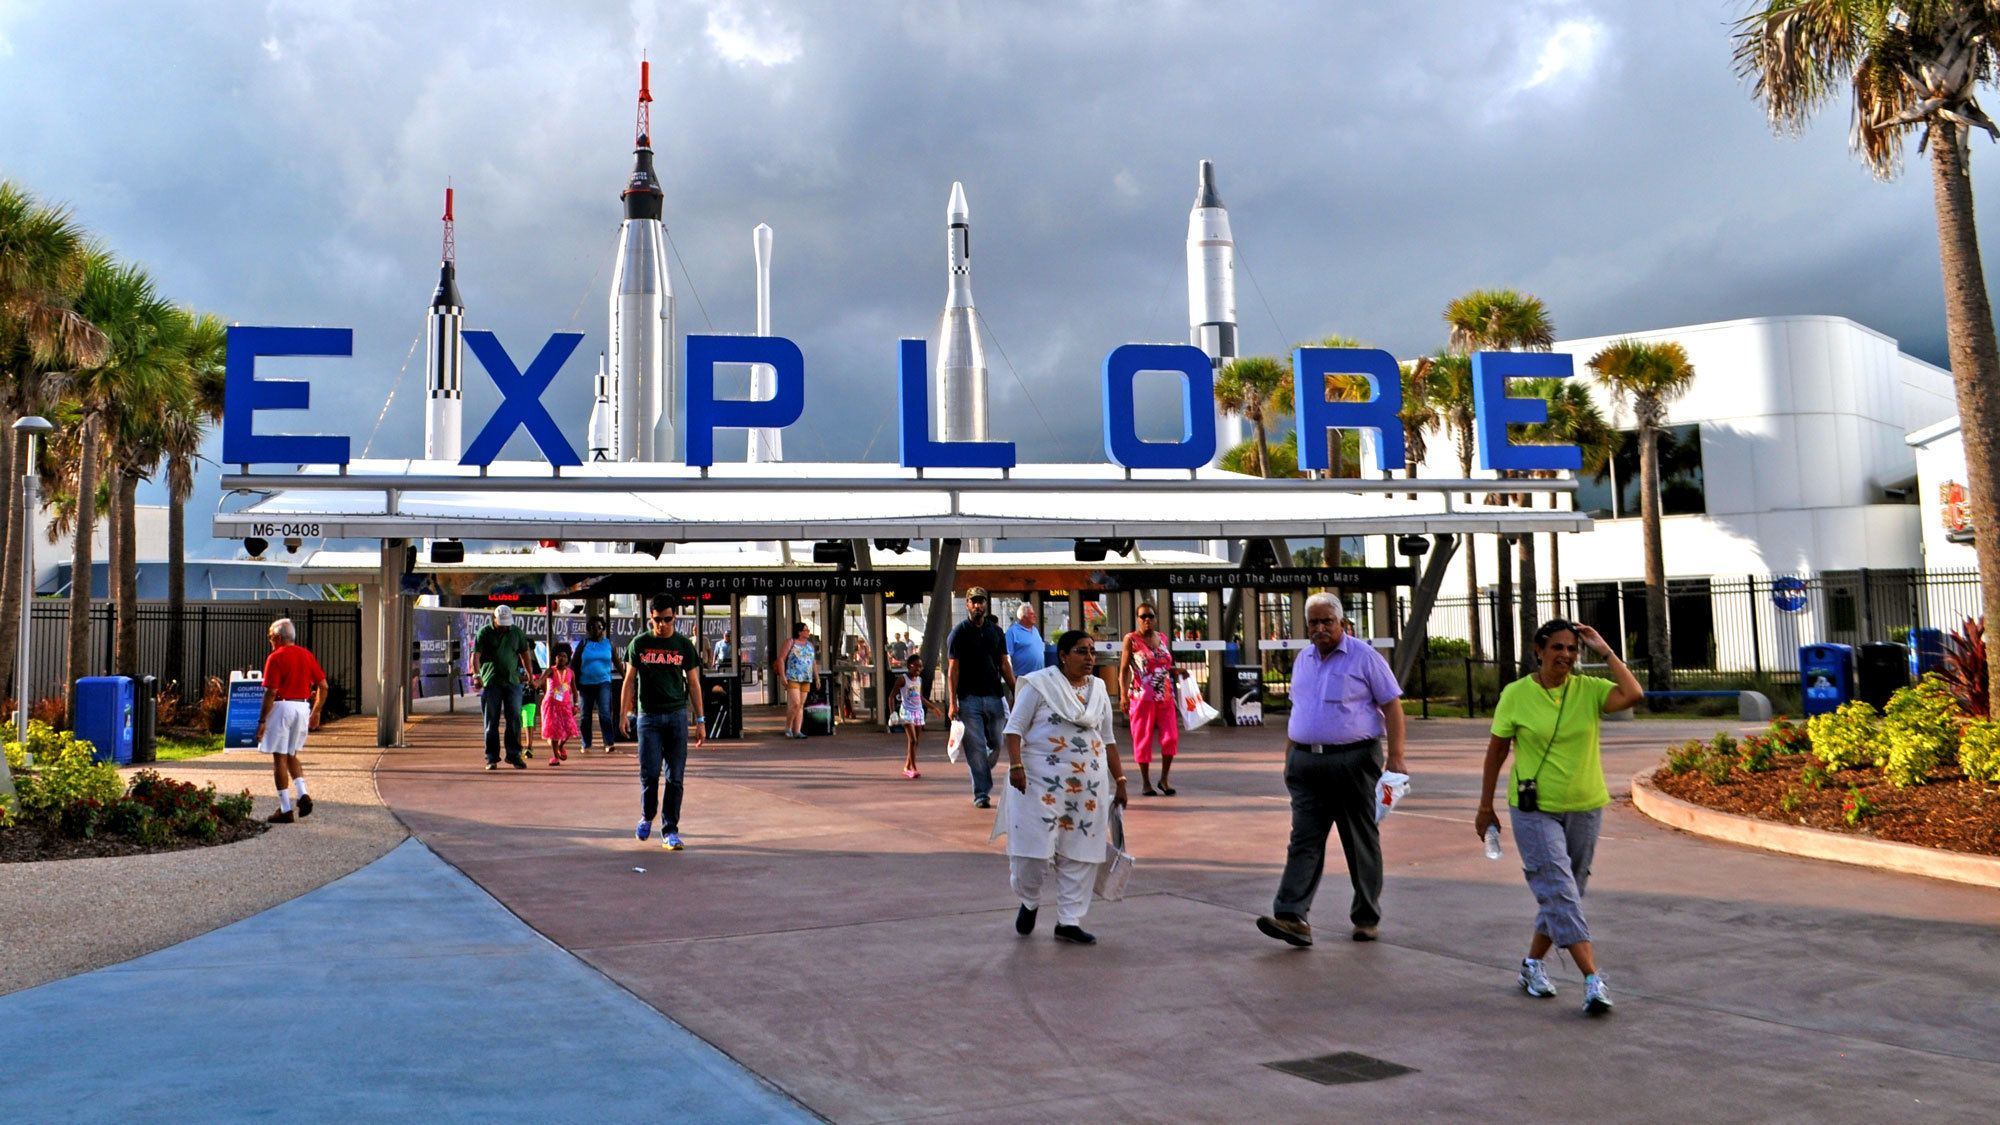 entrance to the space center in Miami